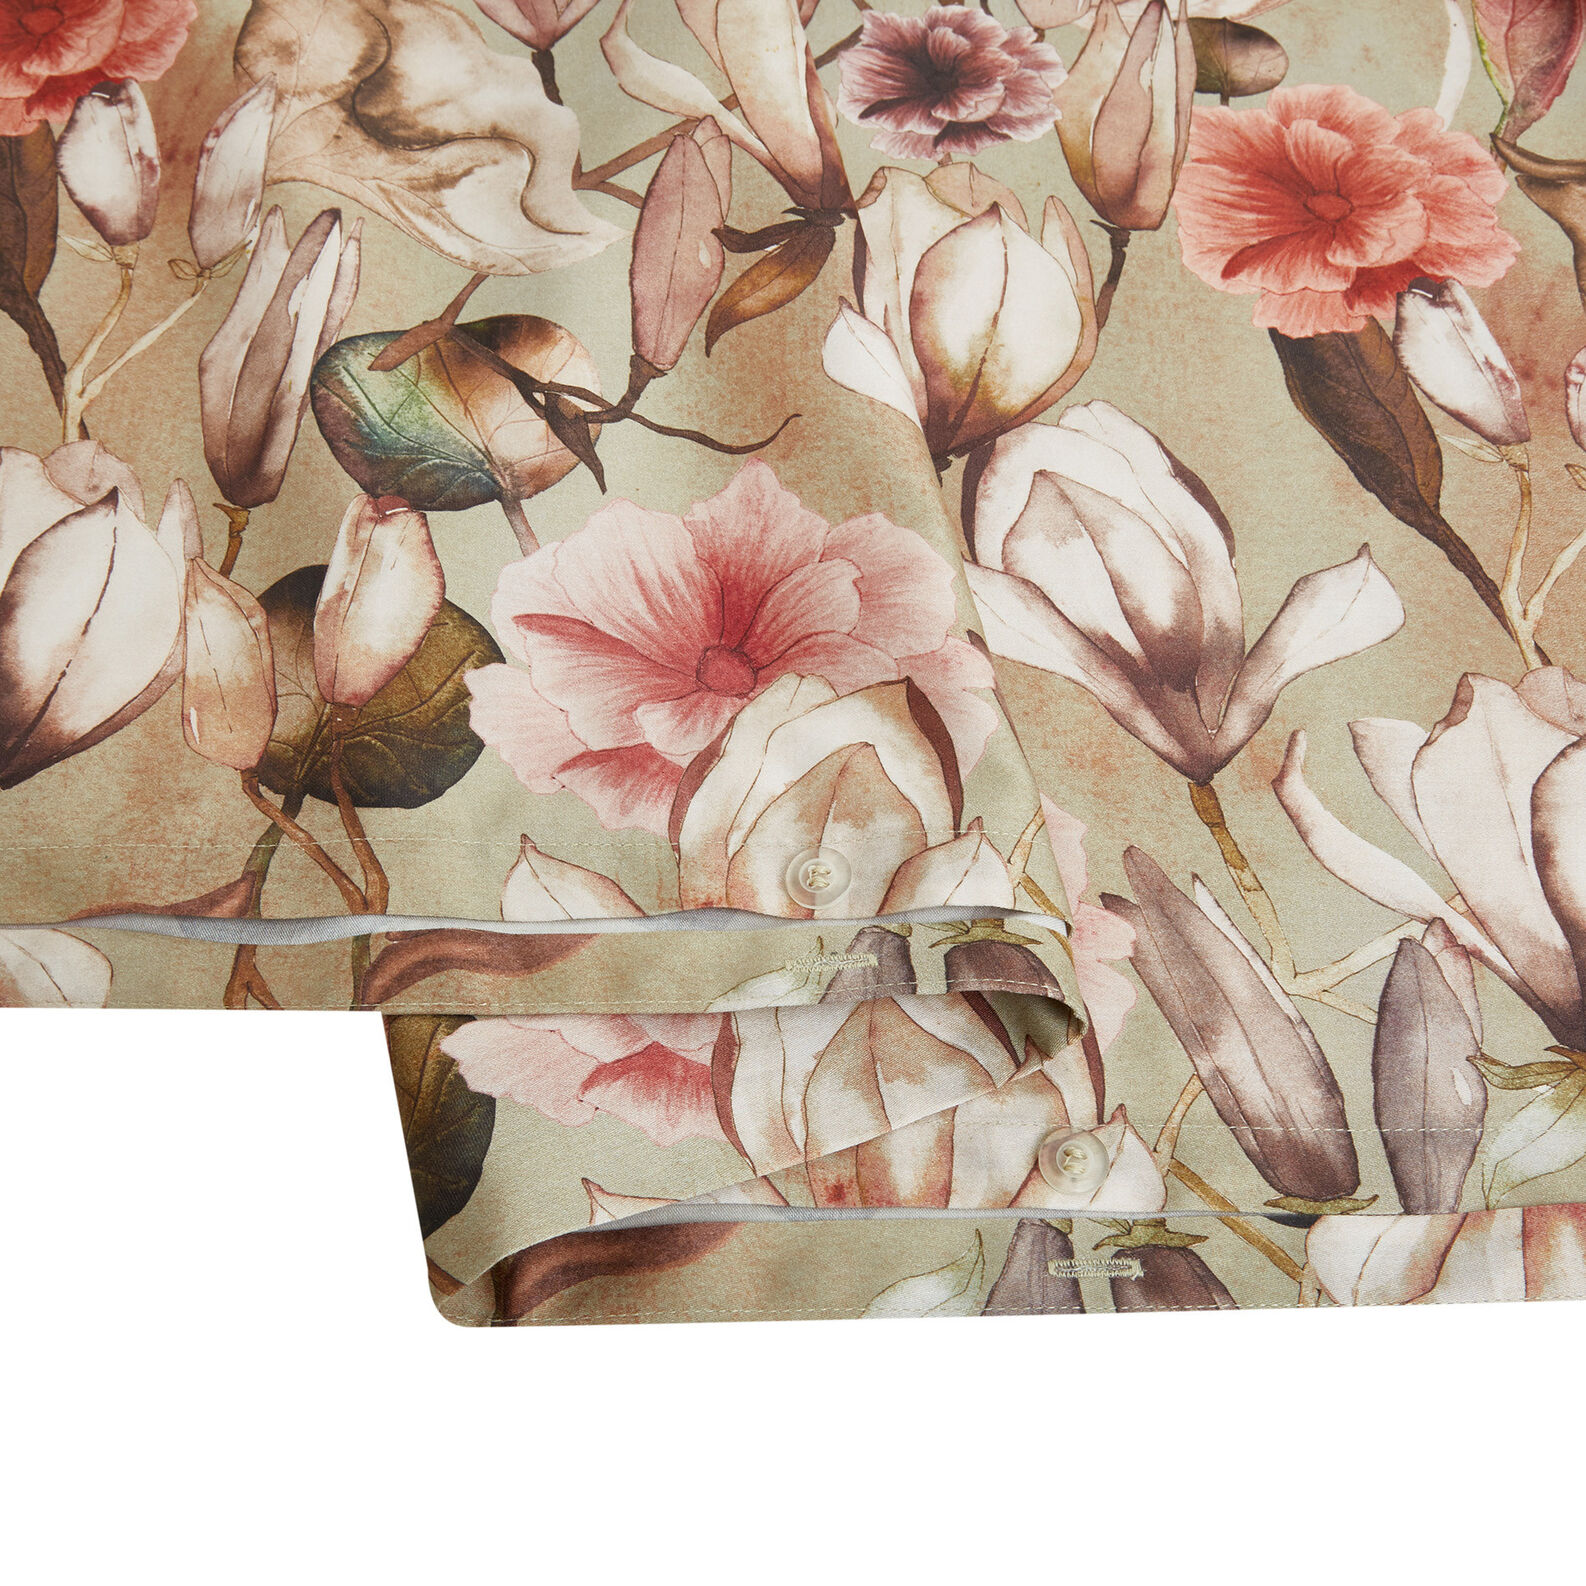 Cotton satin duvet cover with magnolia pattern